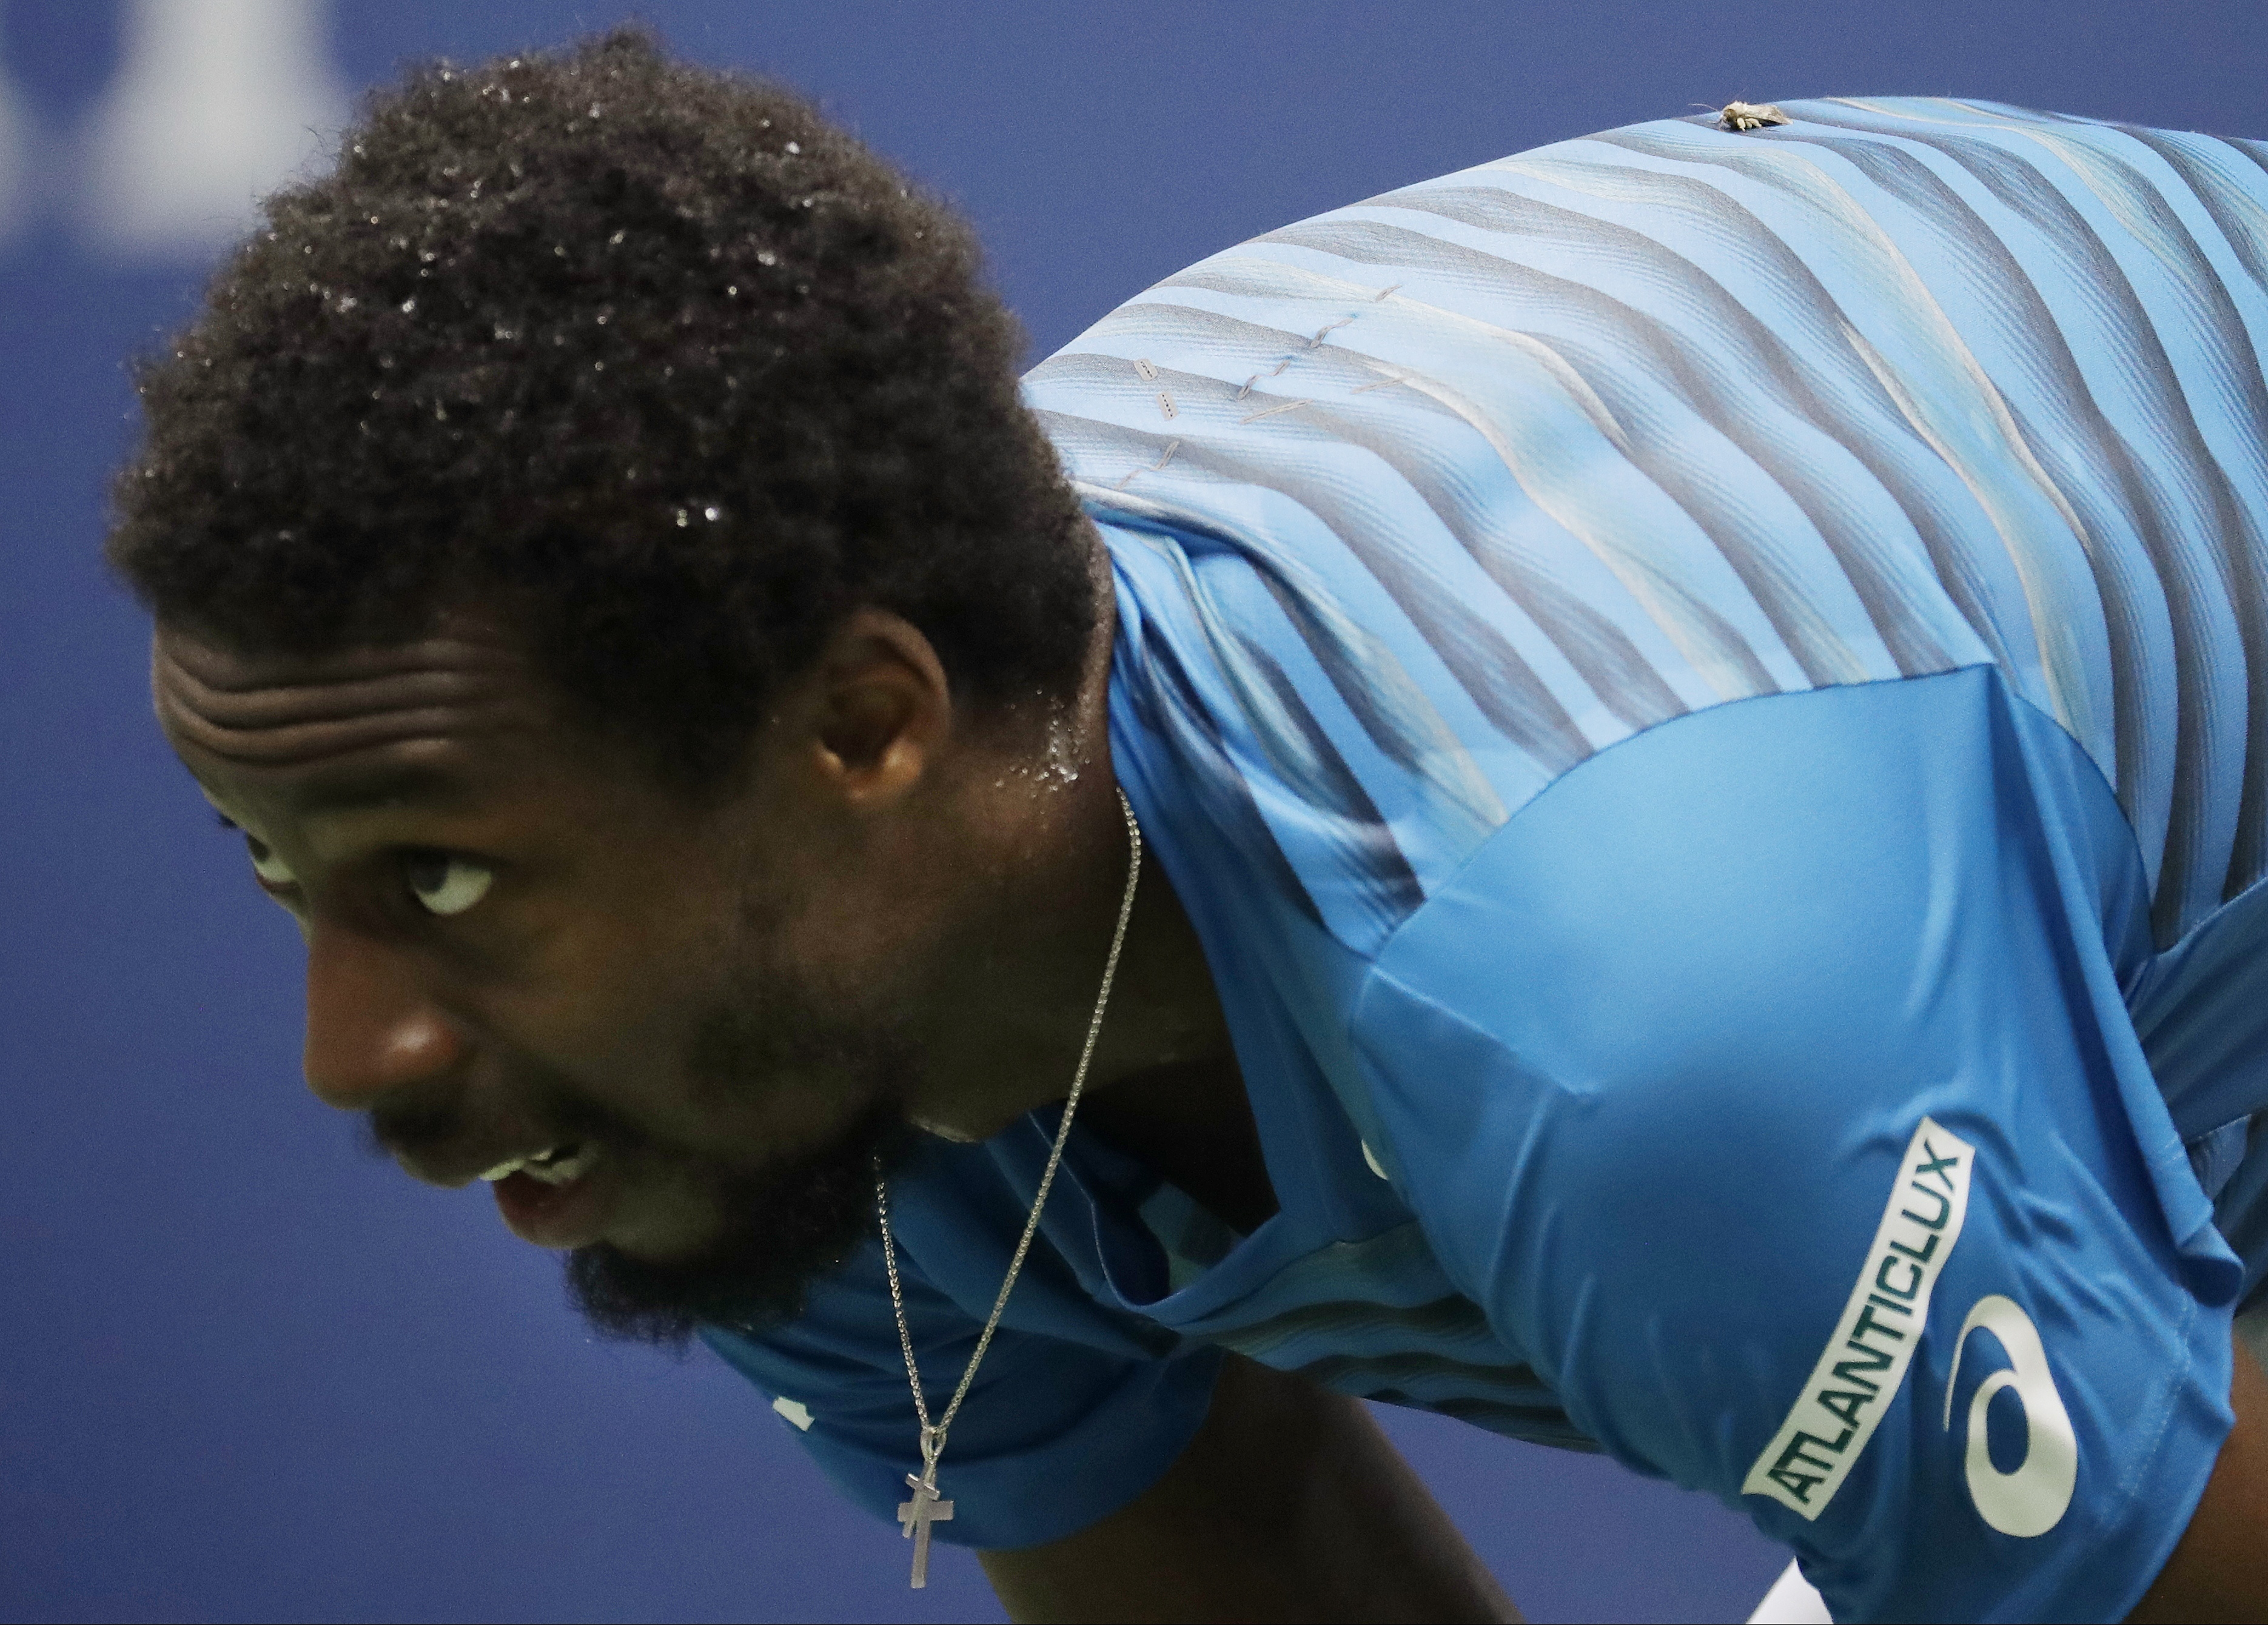 Gael Monfils, of France, prepares for a serve from Novak Djokovic, of Serbia, during the semifinals of the U.S. Open tennis tournament, Friday, Sept. 9, 2016, in New York. (AP Photo/Julio Cortez)